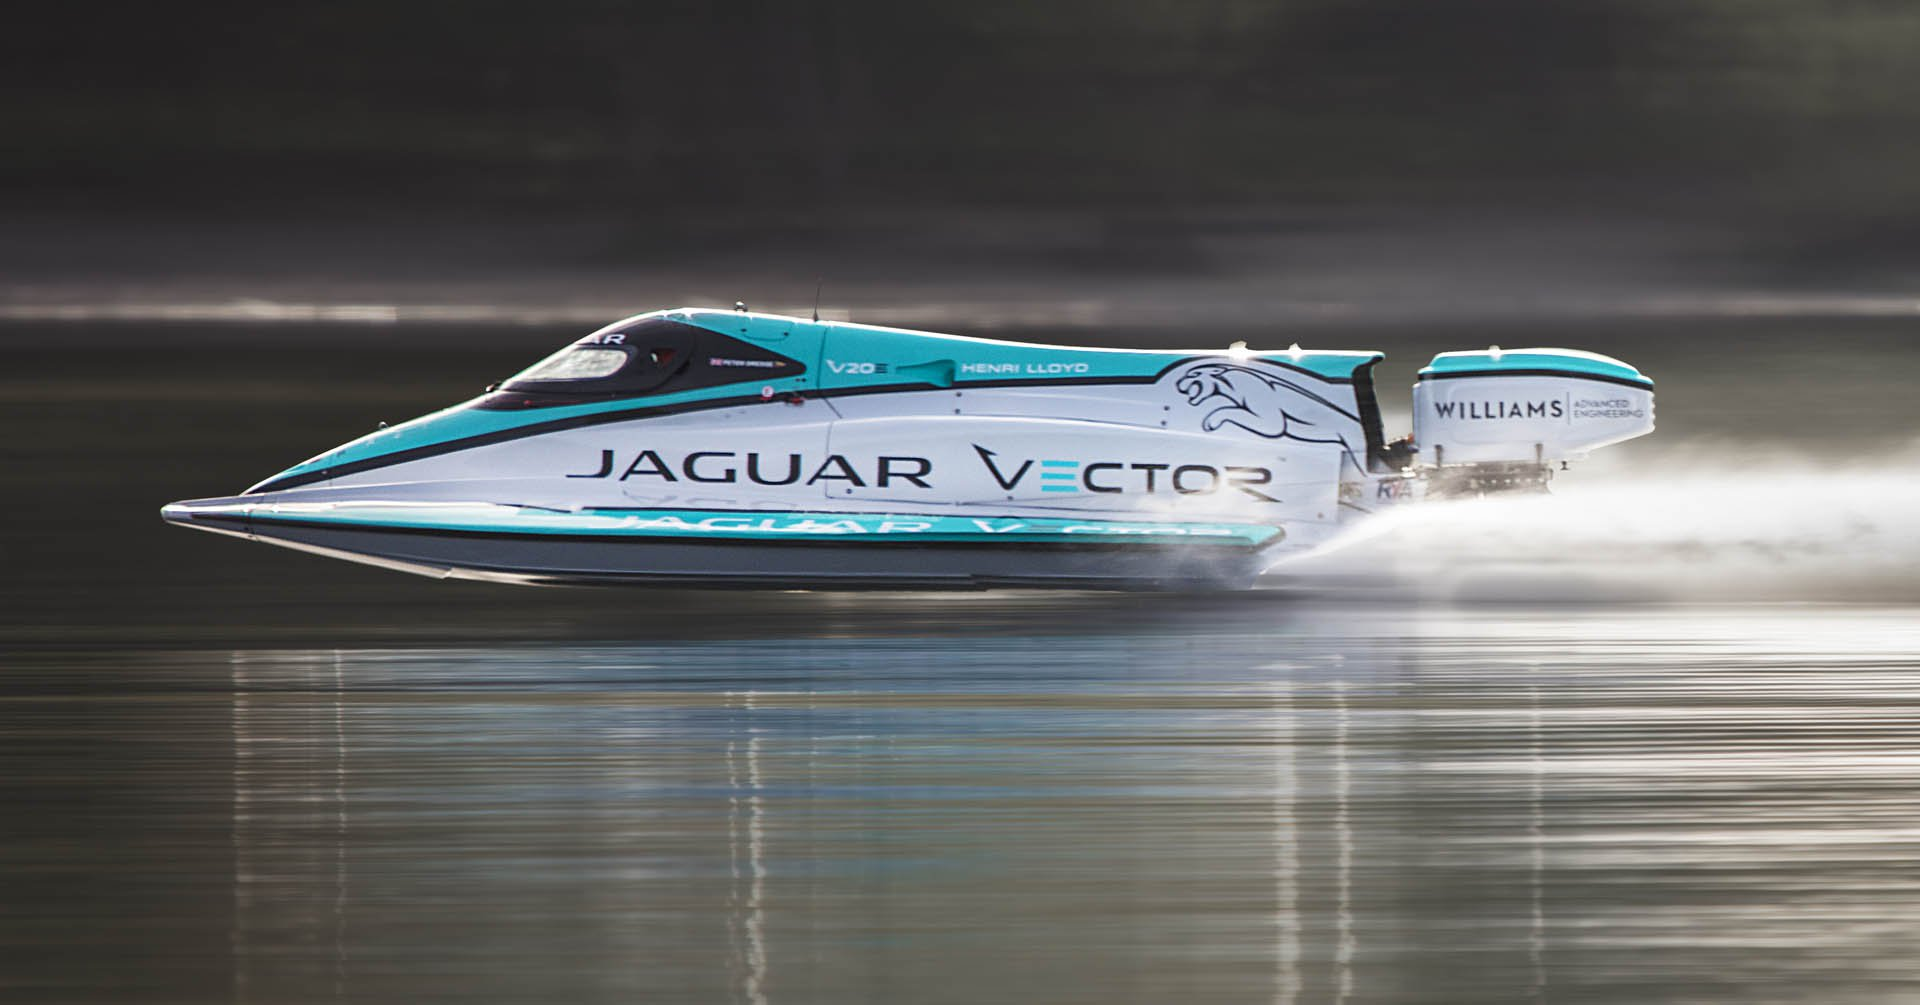 Jaguar_Vector_Racing_V20E_0007